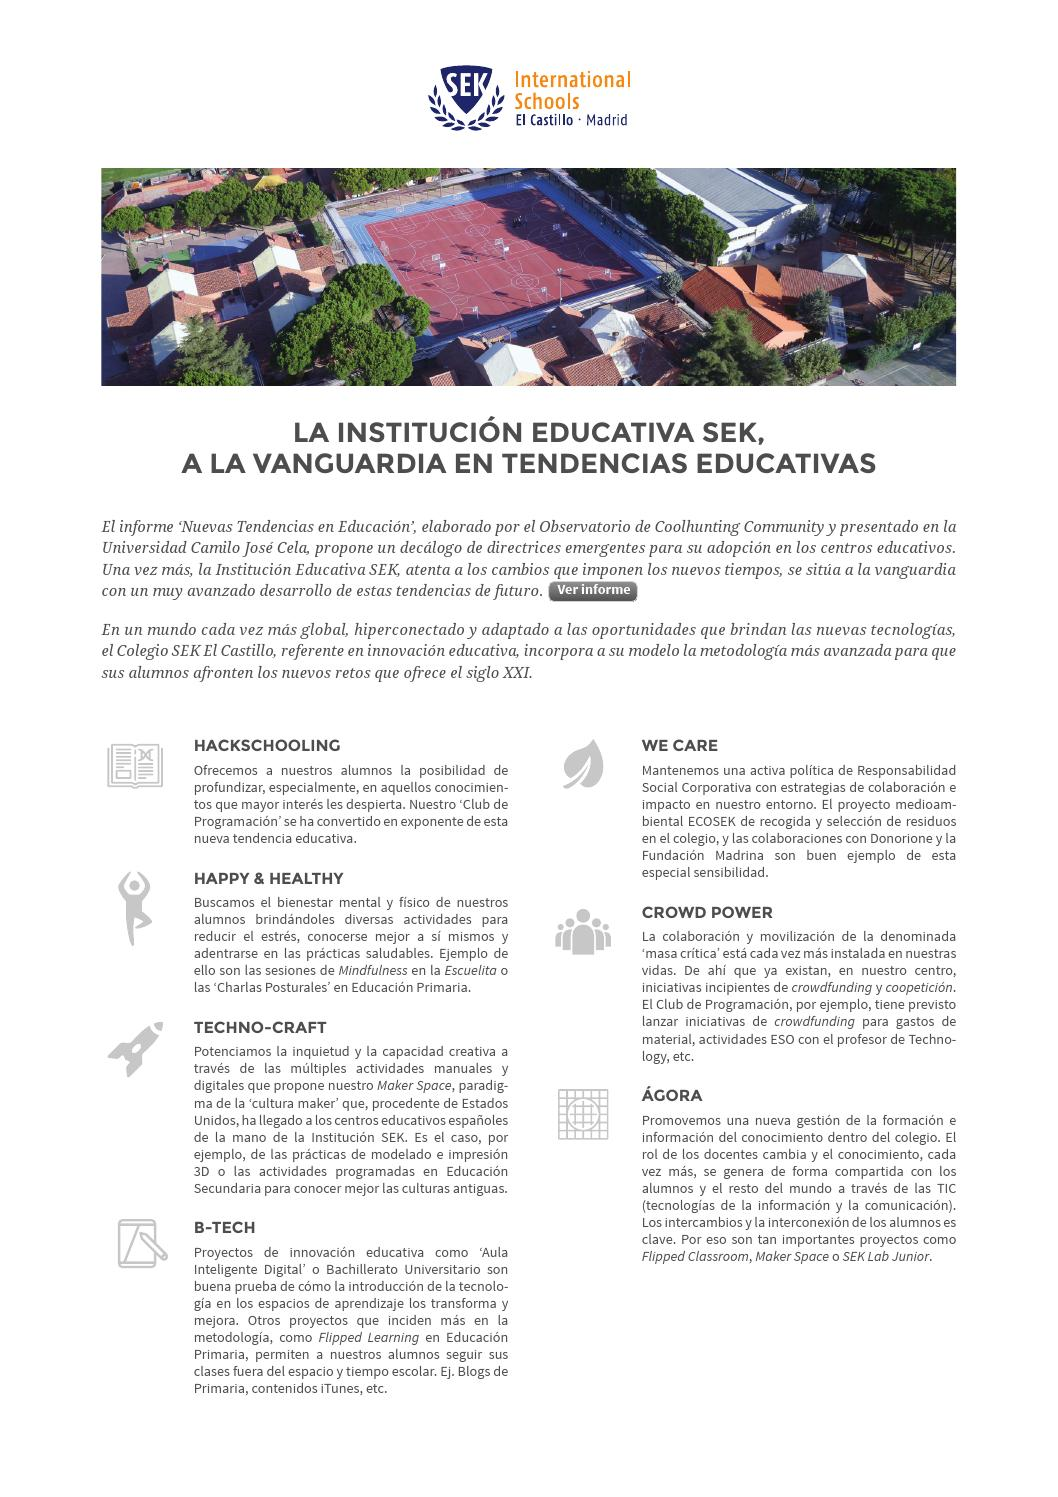 SEK El Castillo, a la vanguardia en innovación educativa by